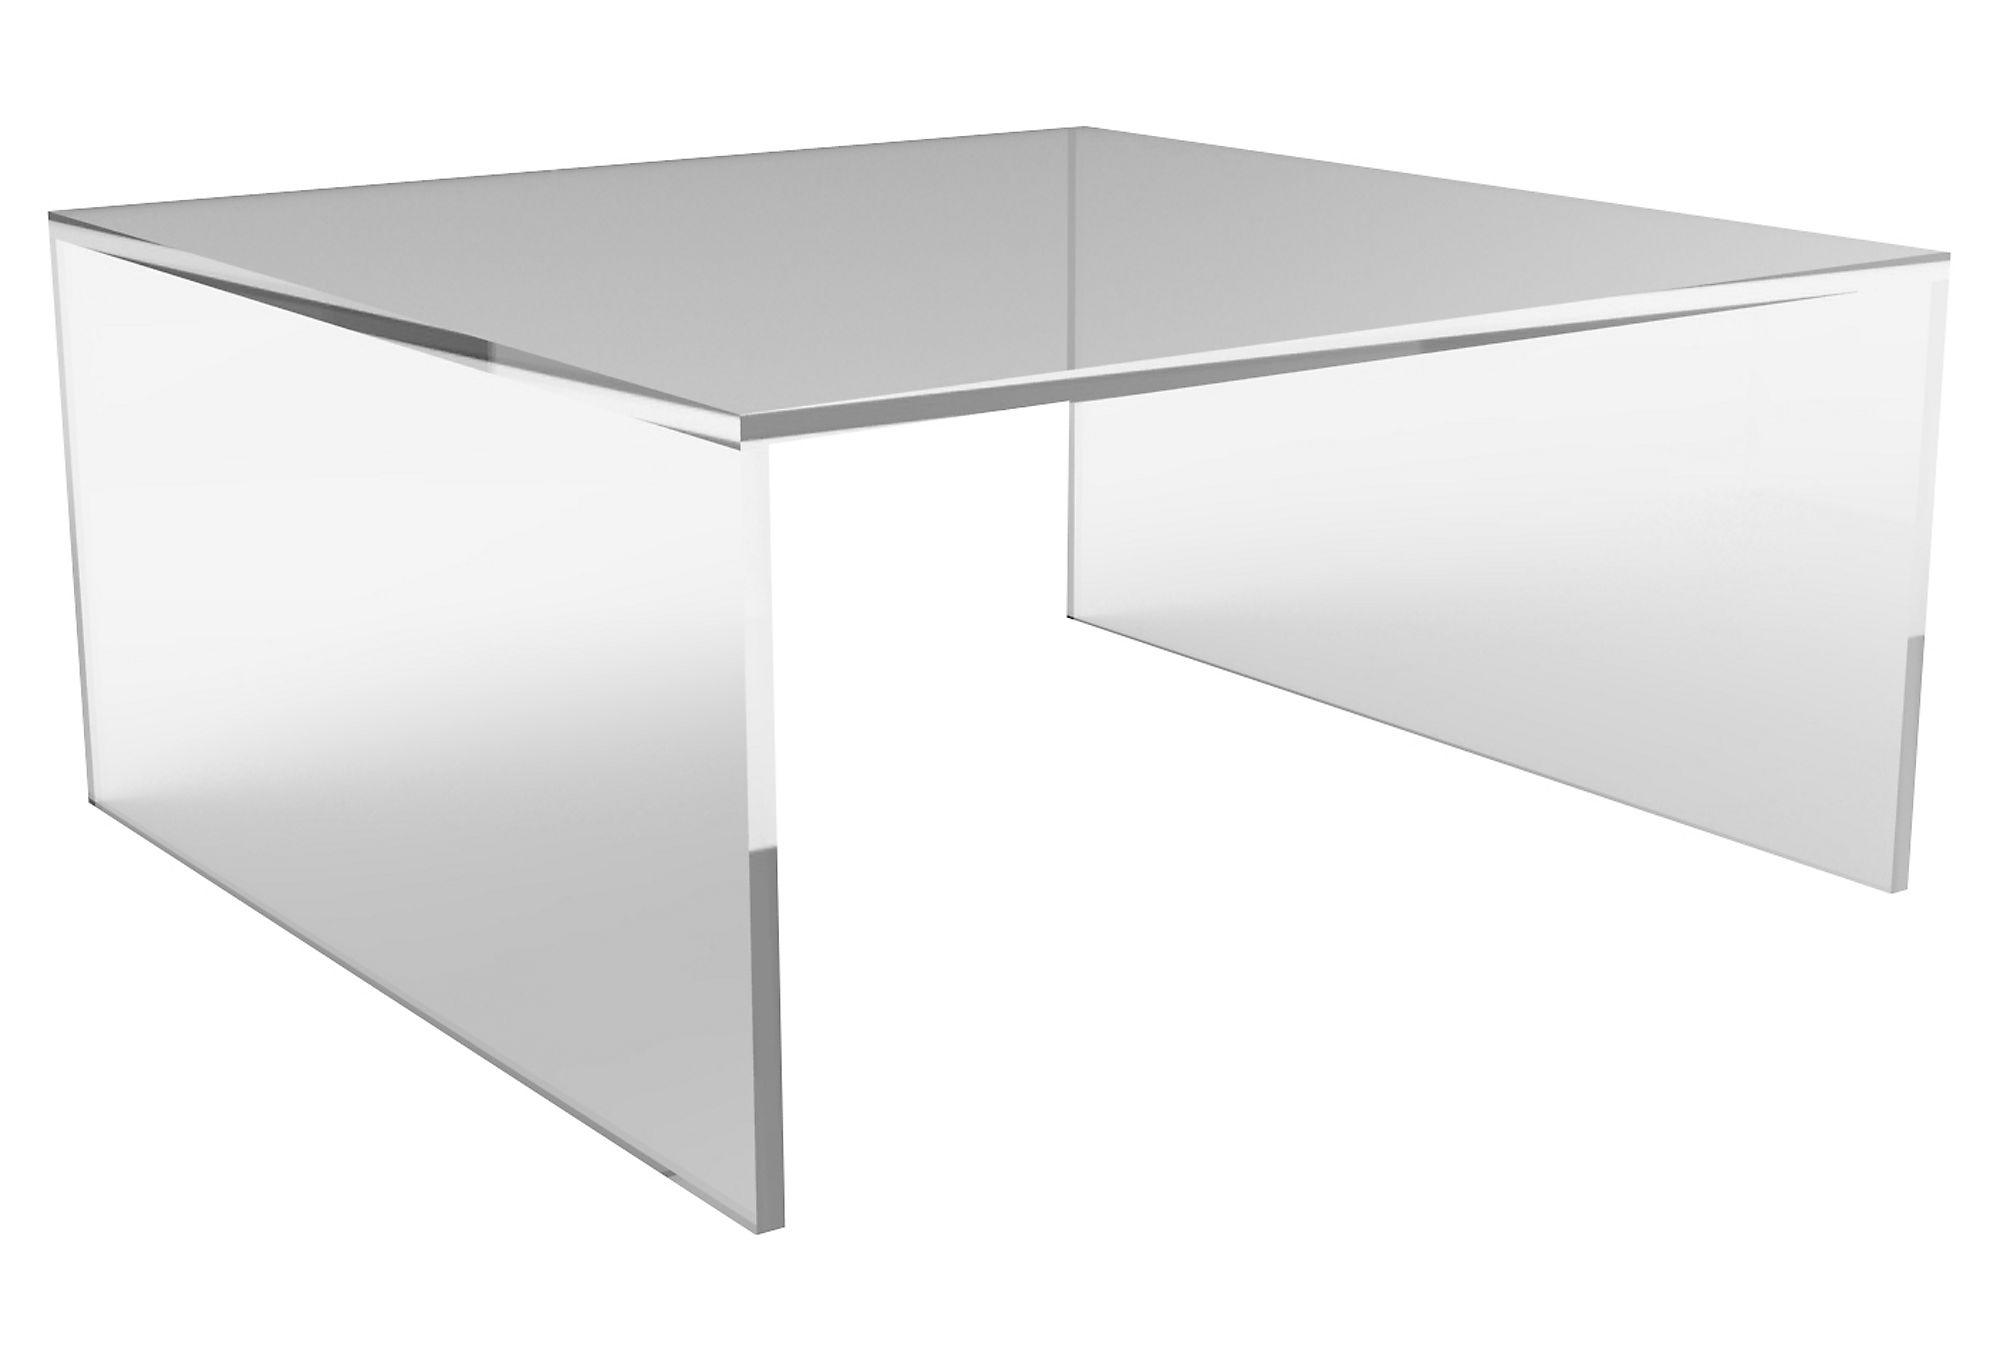 Brickell square coffee table acrylic from one kings lane for Used acrylic coffee table